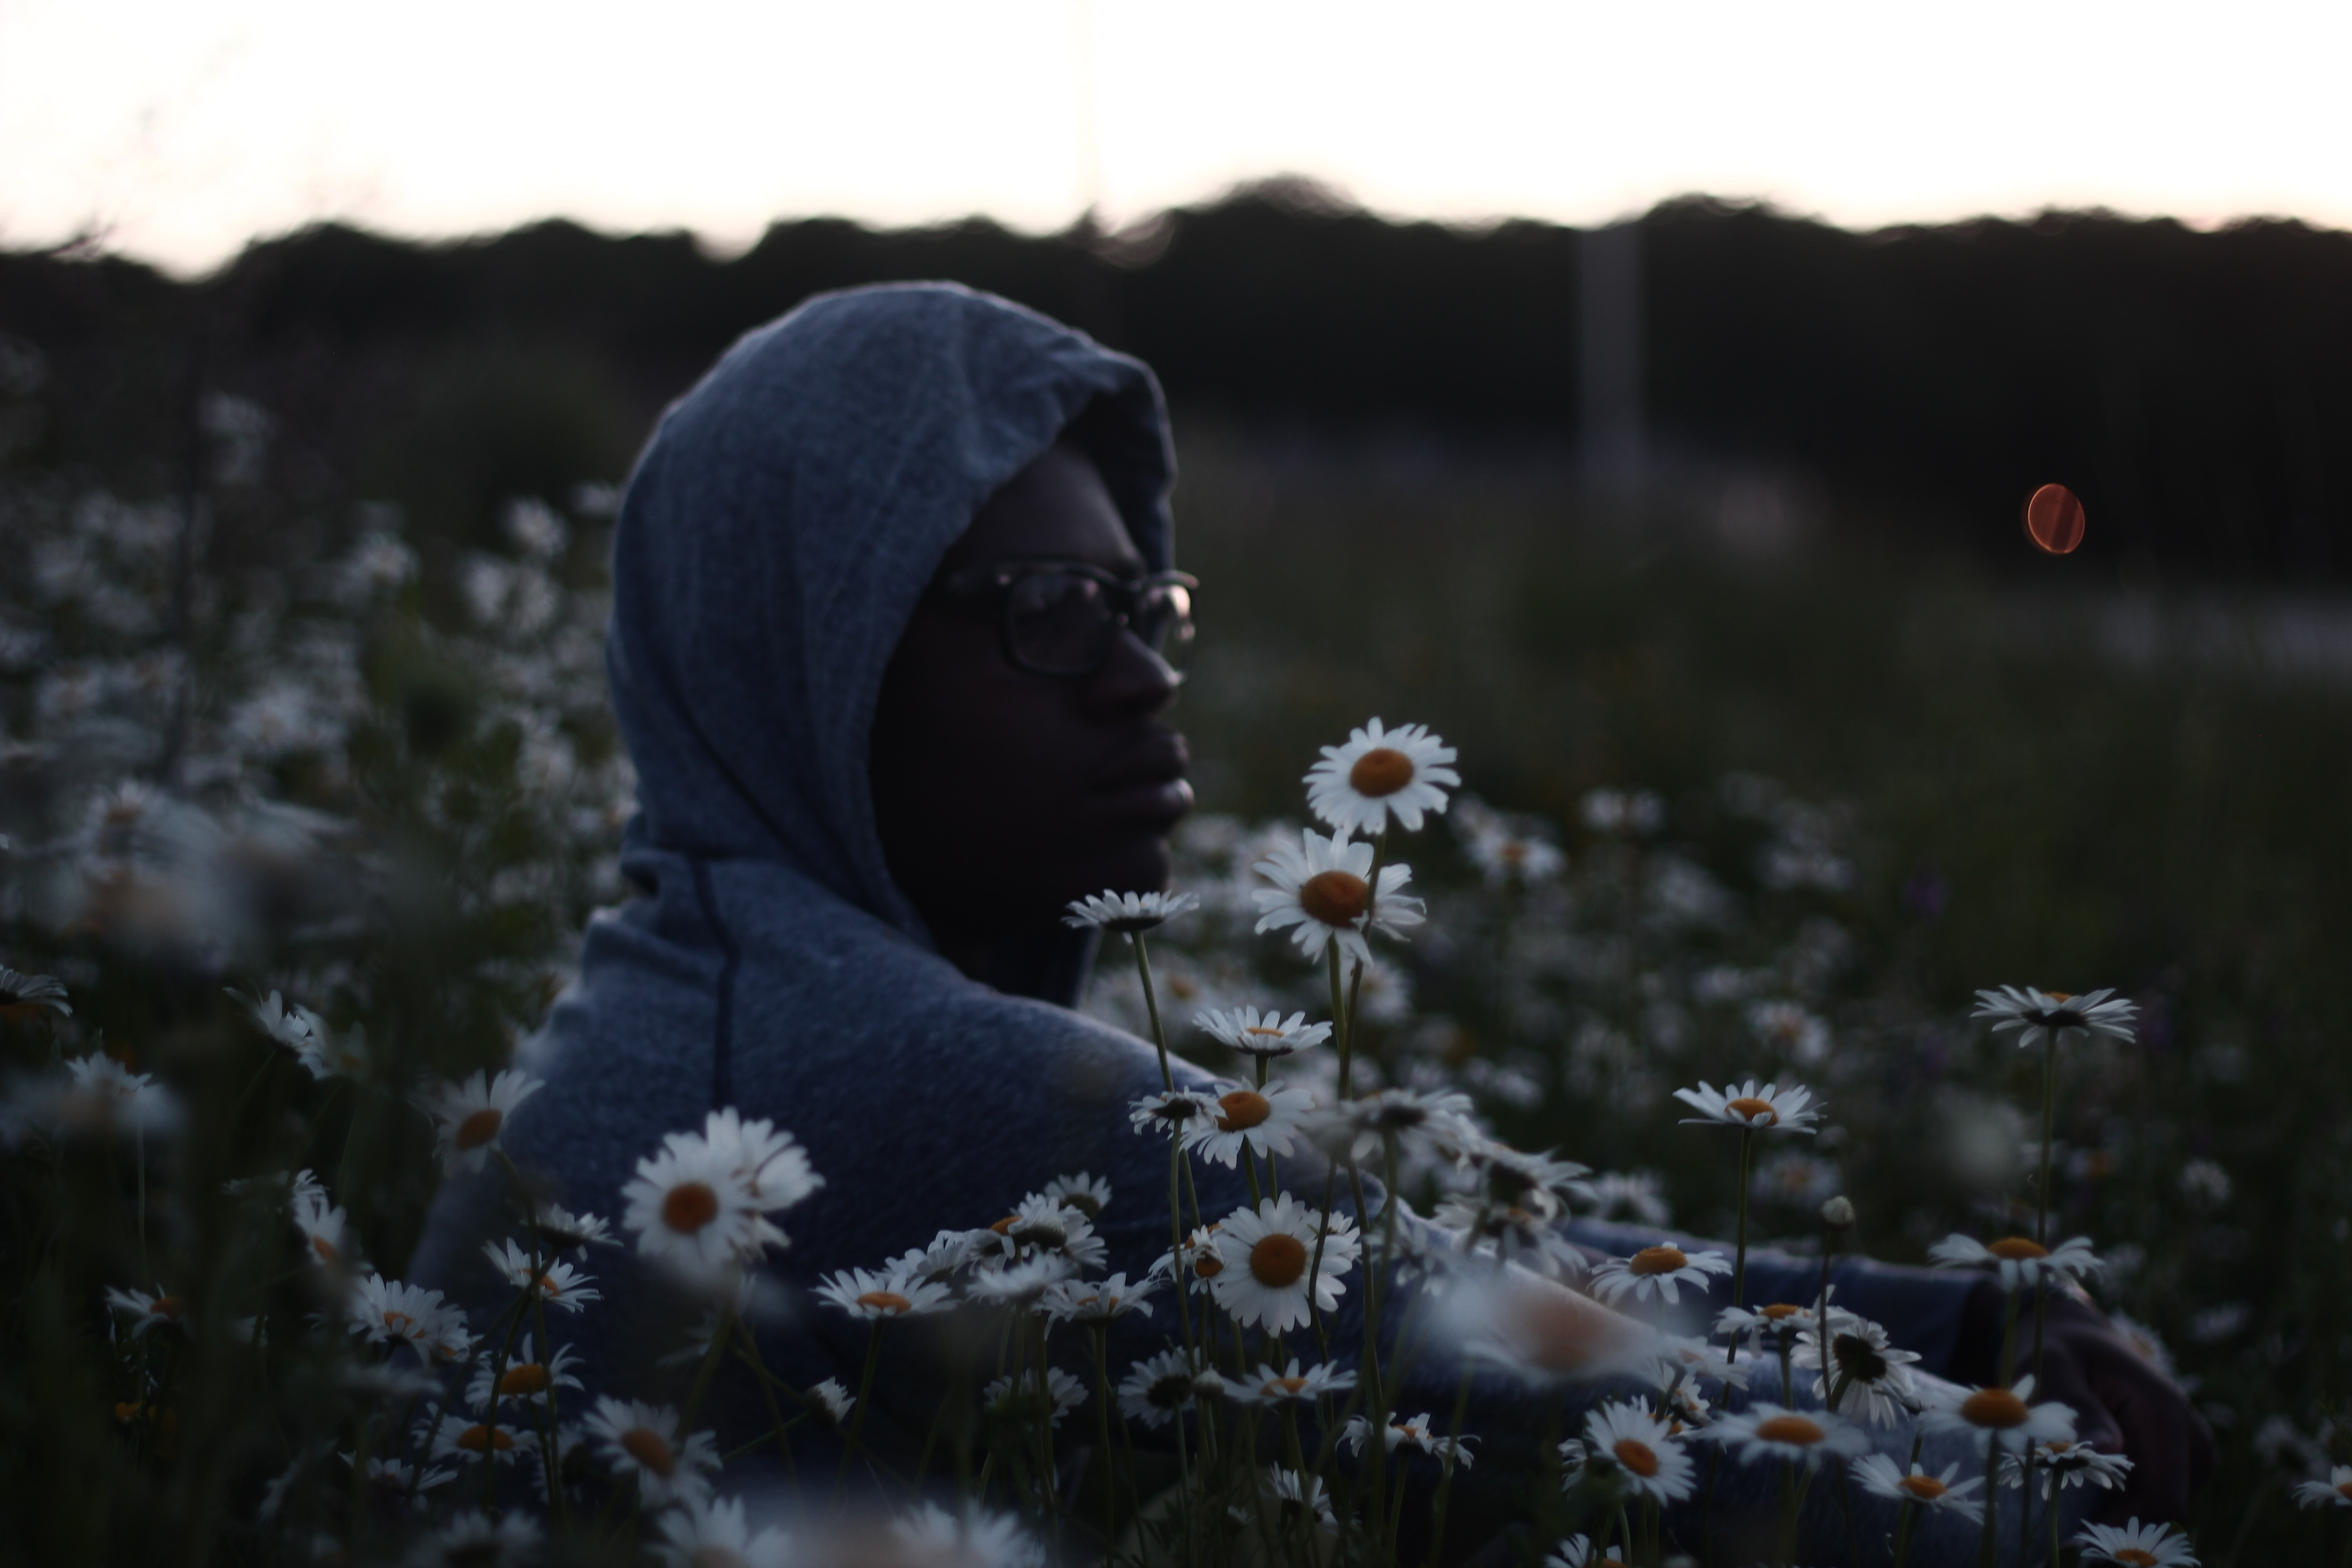 man wearing hoodie and surrounded by Daisy flowers